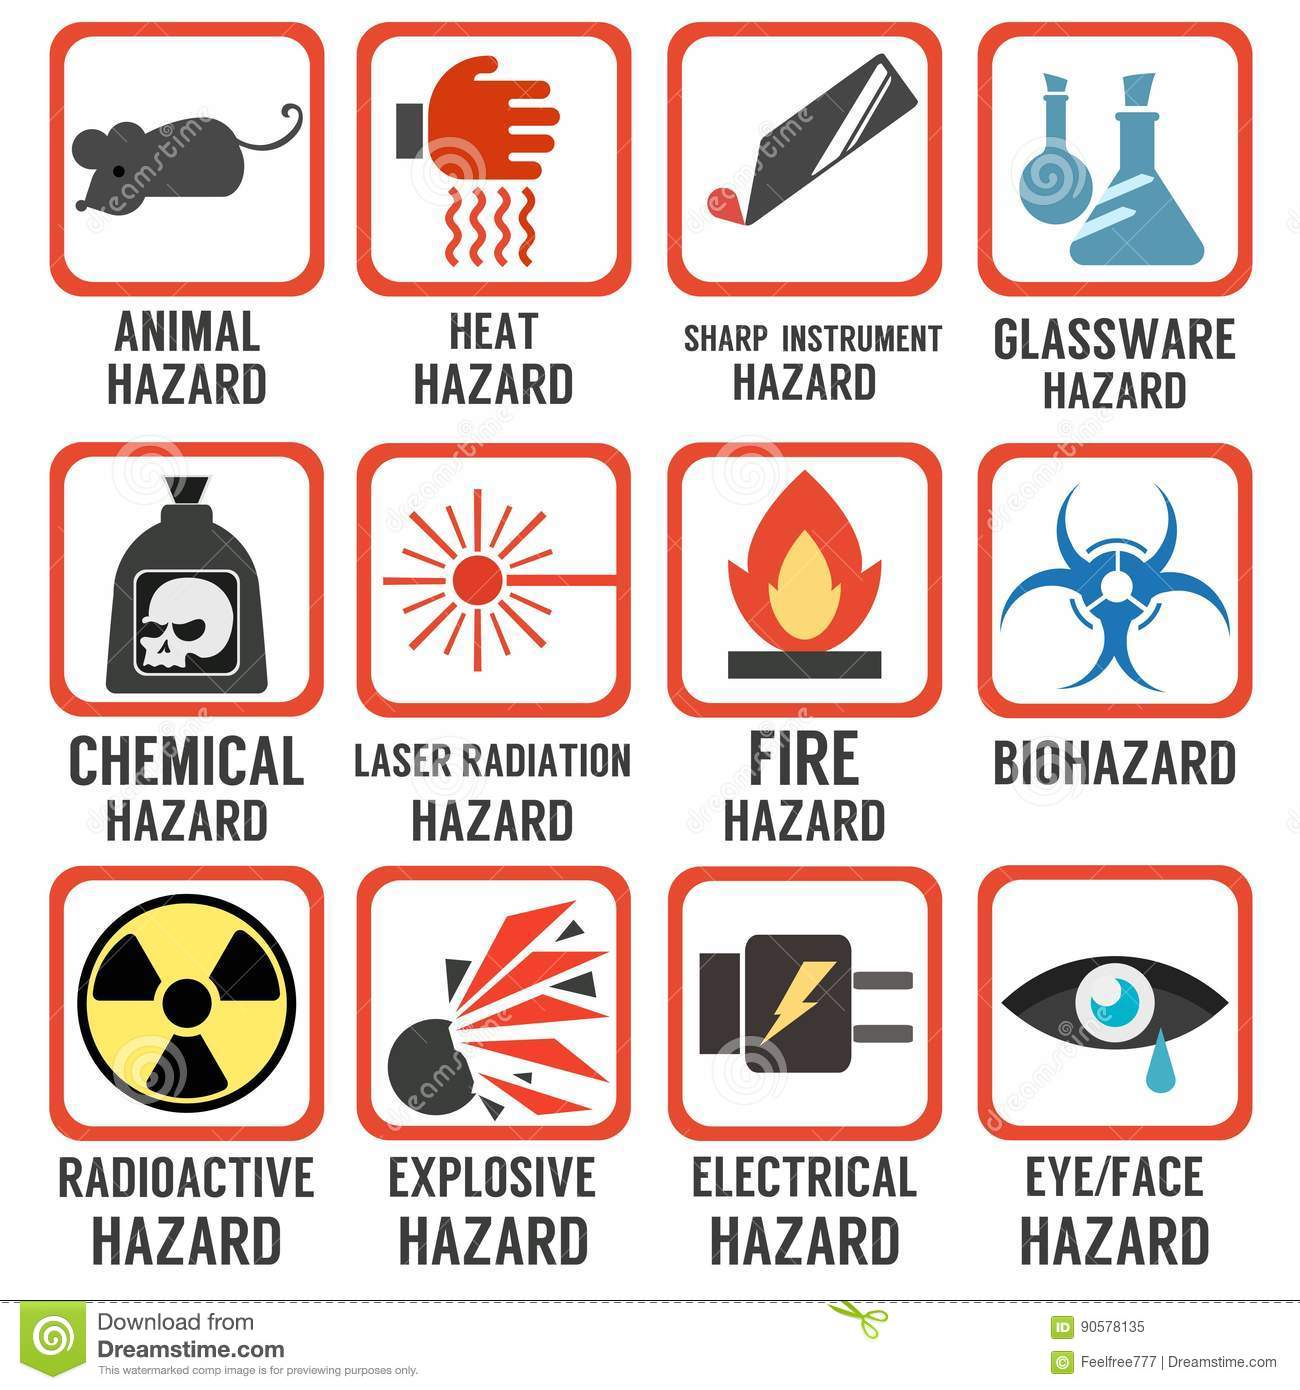 Laboratory science hazards concept poster stock vector laboratory science hazards concept poster buycottarizona Image collections